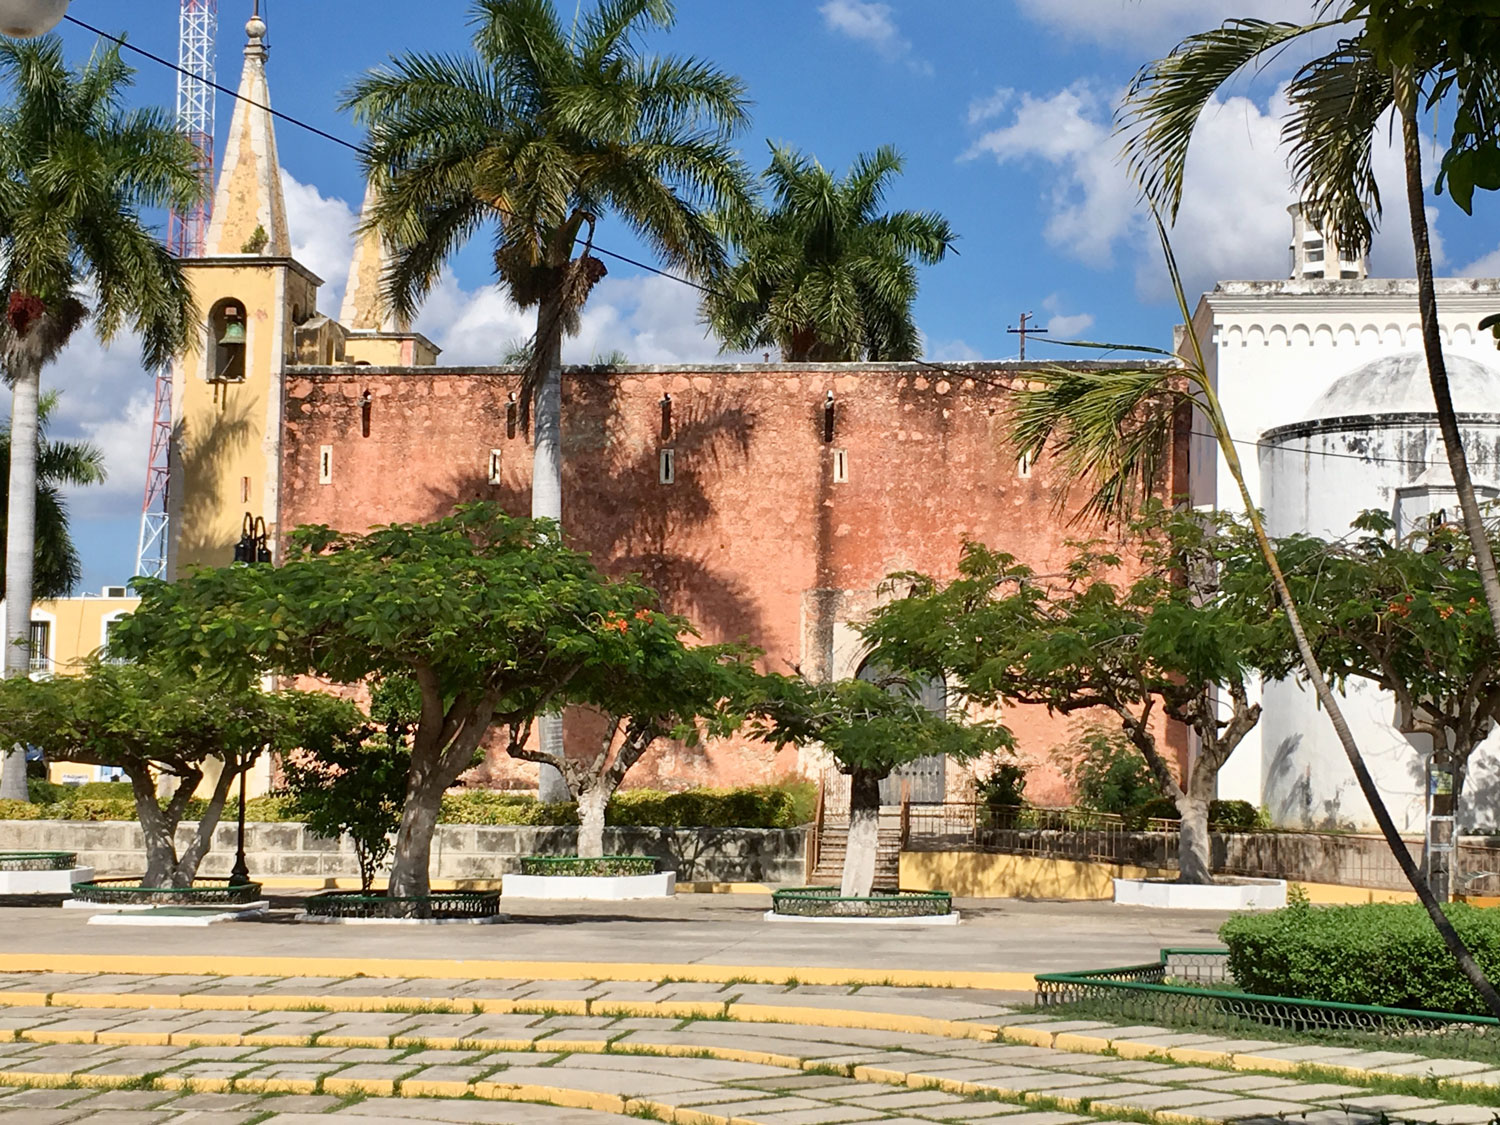 Parque de Santa Ana, just off Paseo de Montejo, colourful and vibrant.